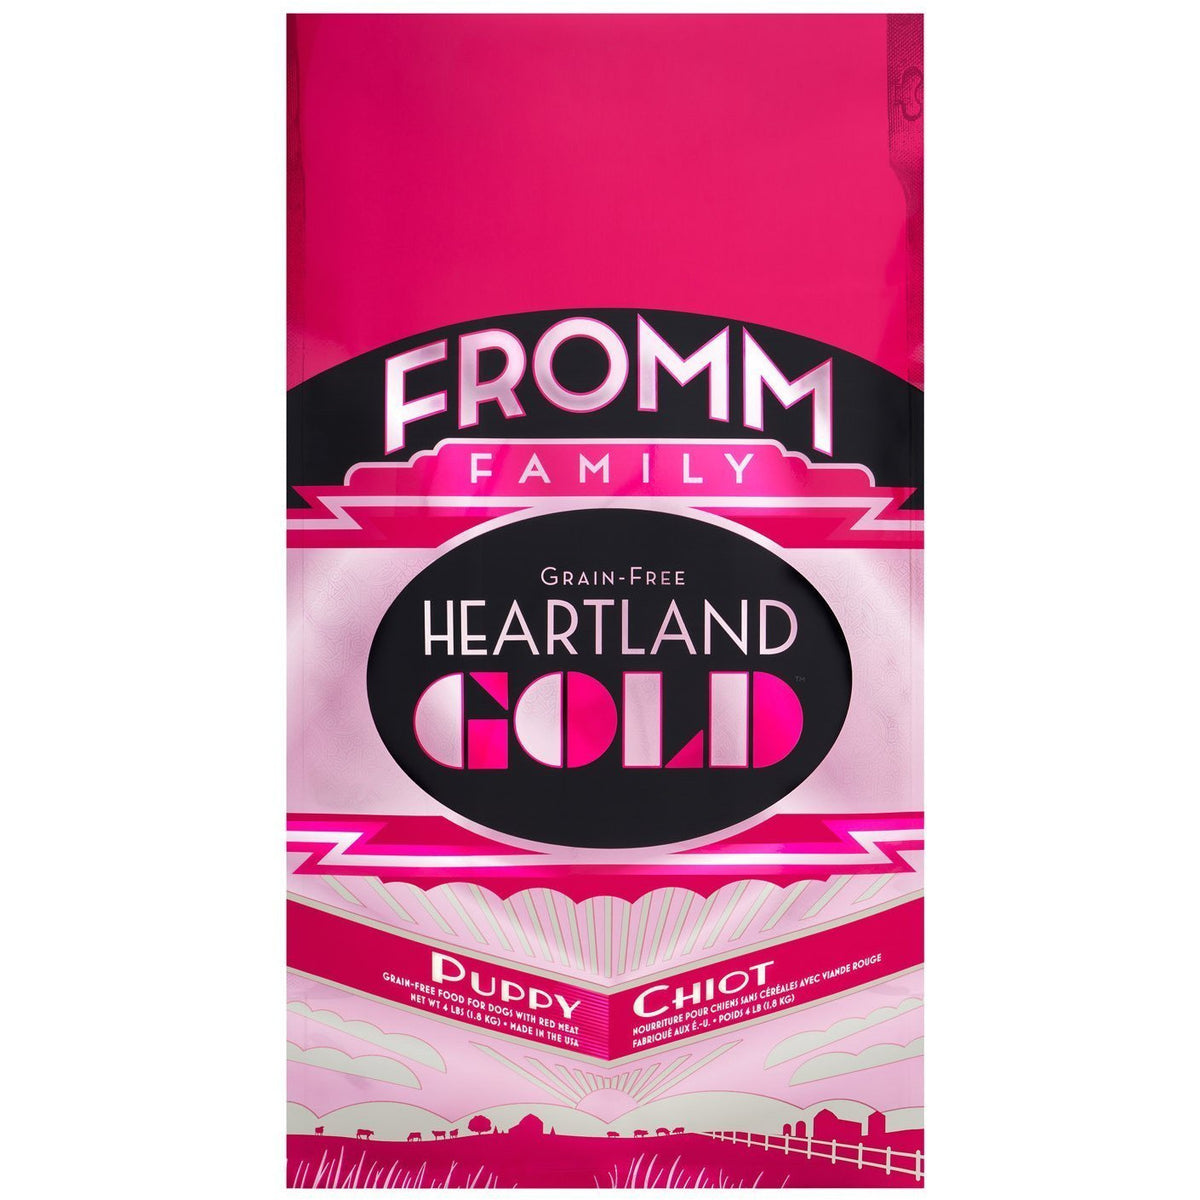 Fromm Heartland Gold Puppy Food (1.8kg, 5.4kg, 11.8kg)